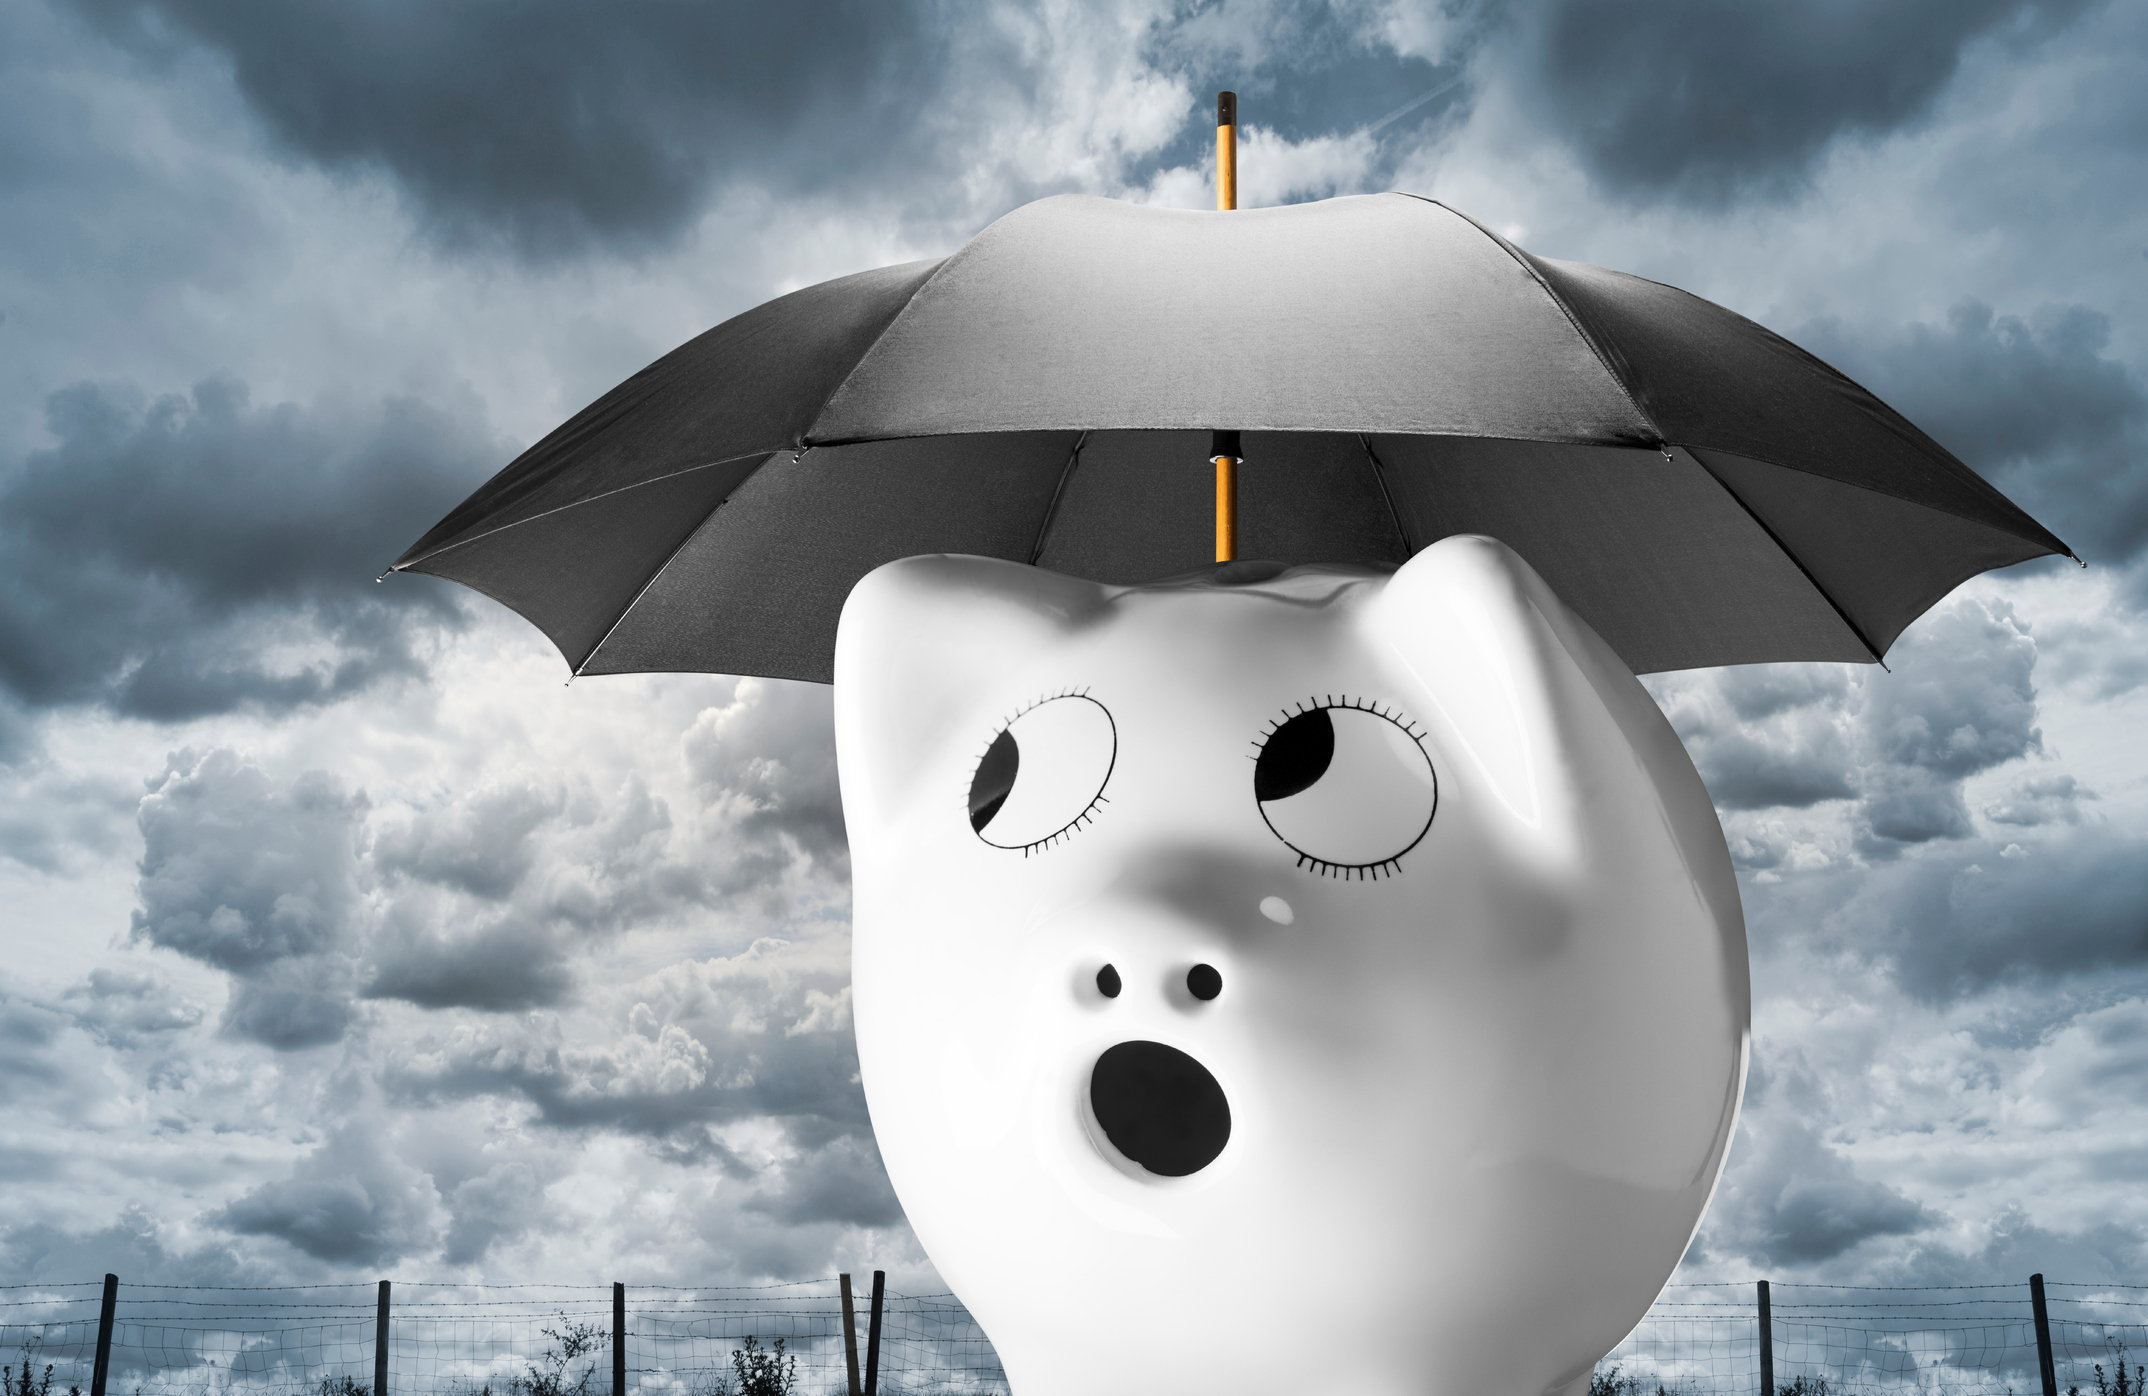 Stormy Clouds bring unhappy news from the mortgage company.